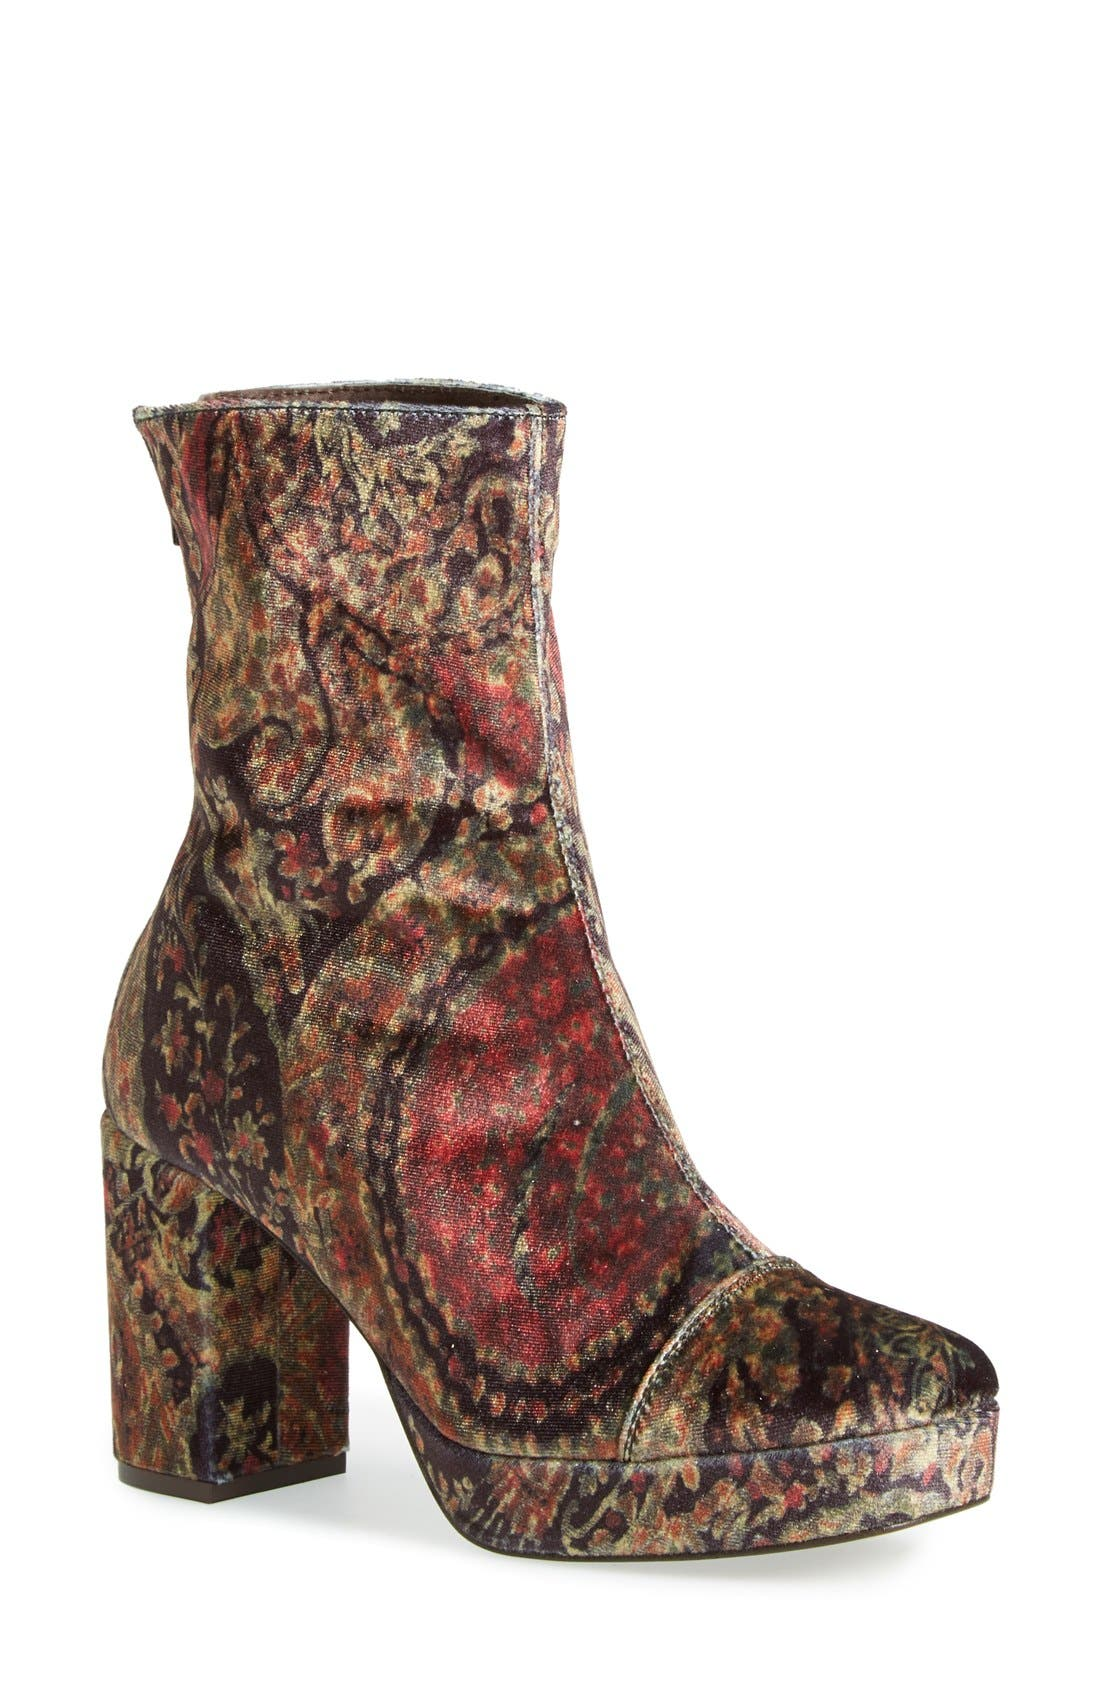 Alternate Image 1 Selected - Free People 'Day for Night' Platform Boot (Women)